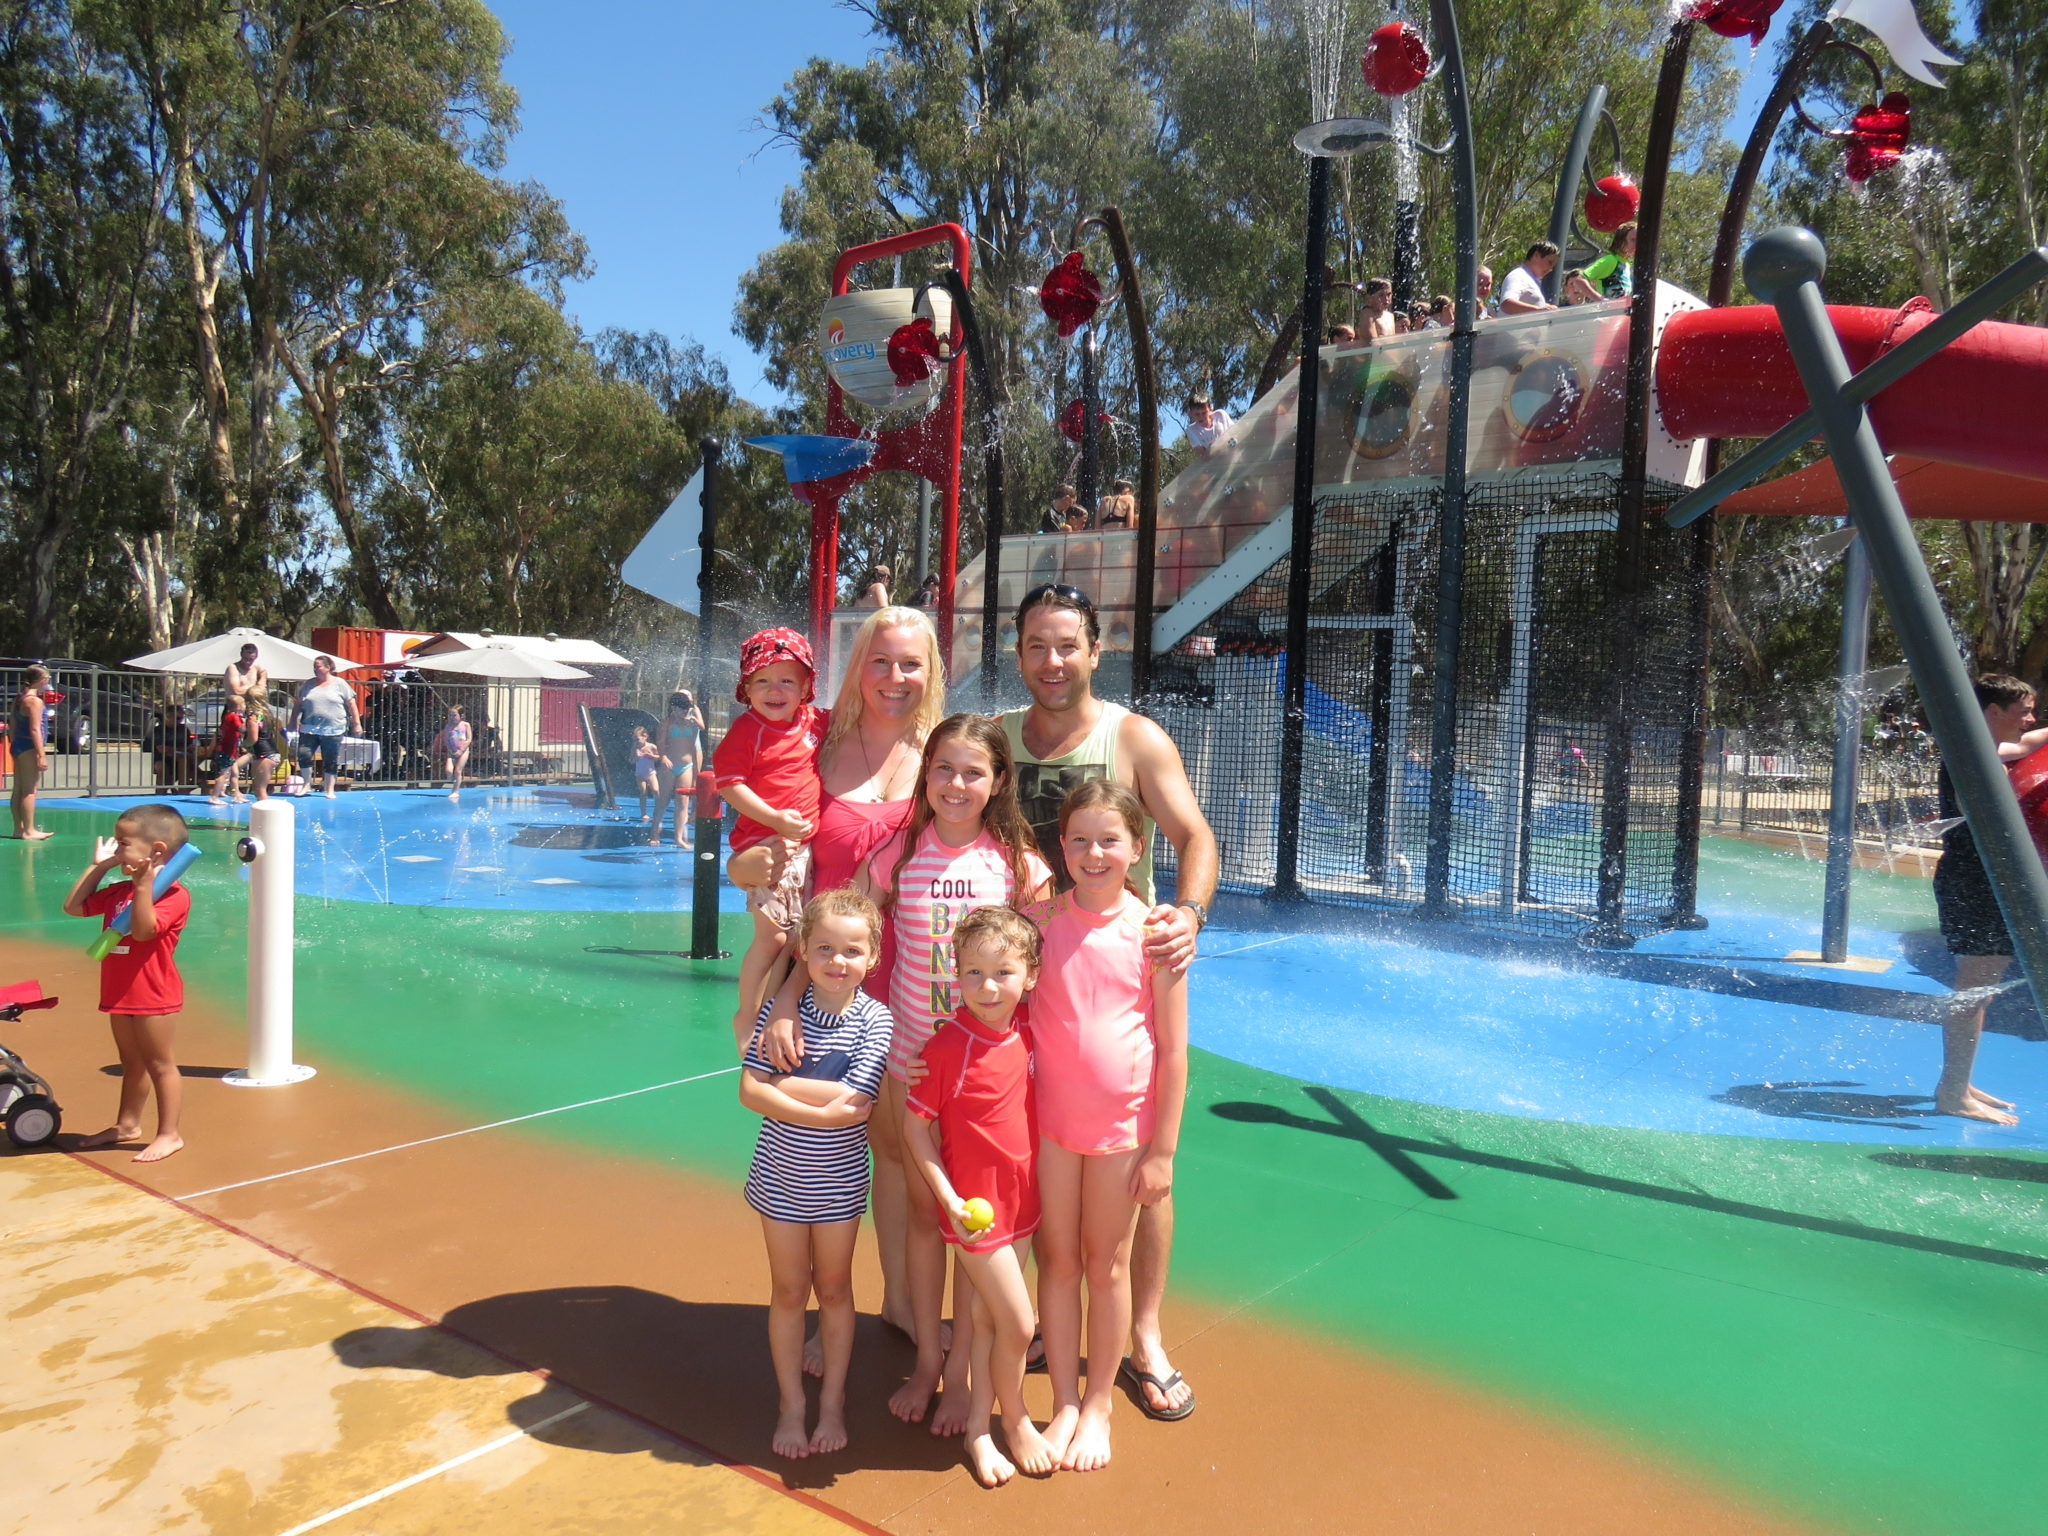 Waterpark Fun At Discovery Parks Moama's Latest Attraction